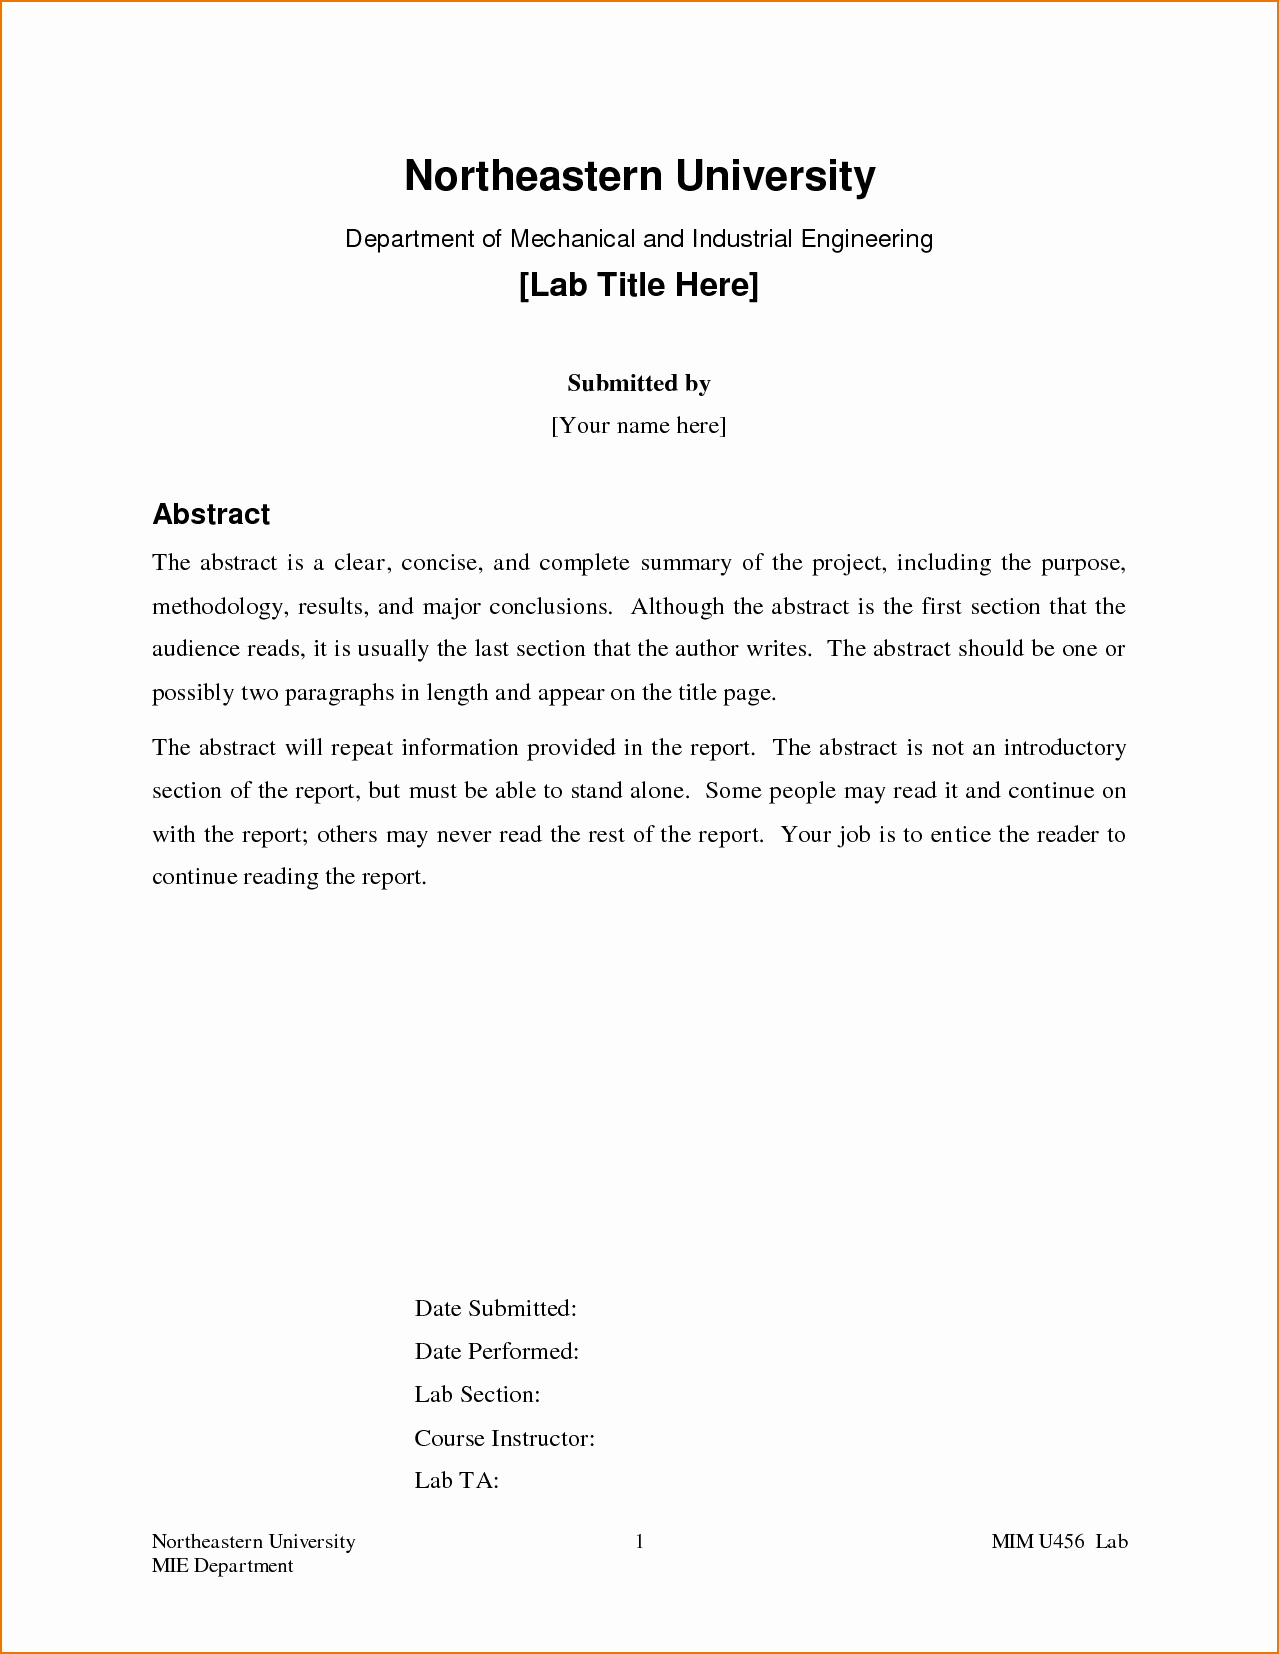 Formal Lab Report Template Beautiful How to Write A formal Lab Report Abstract I Ghostwrite